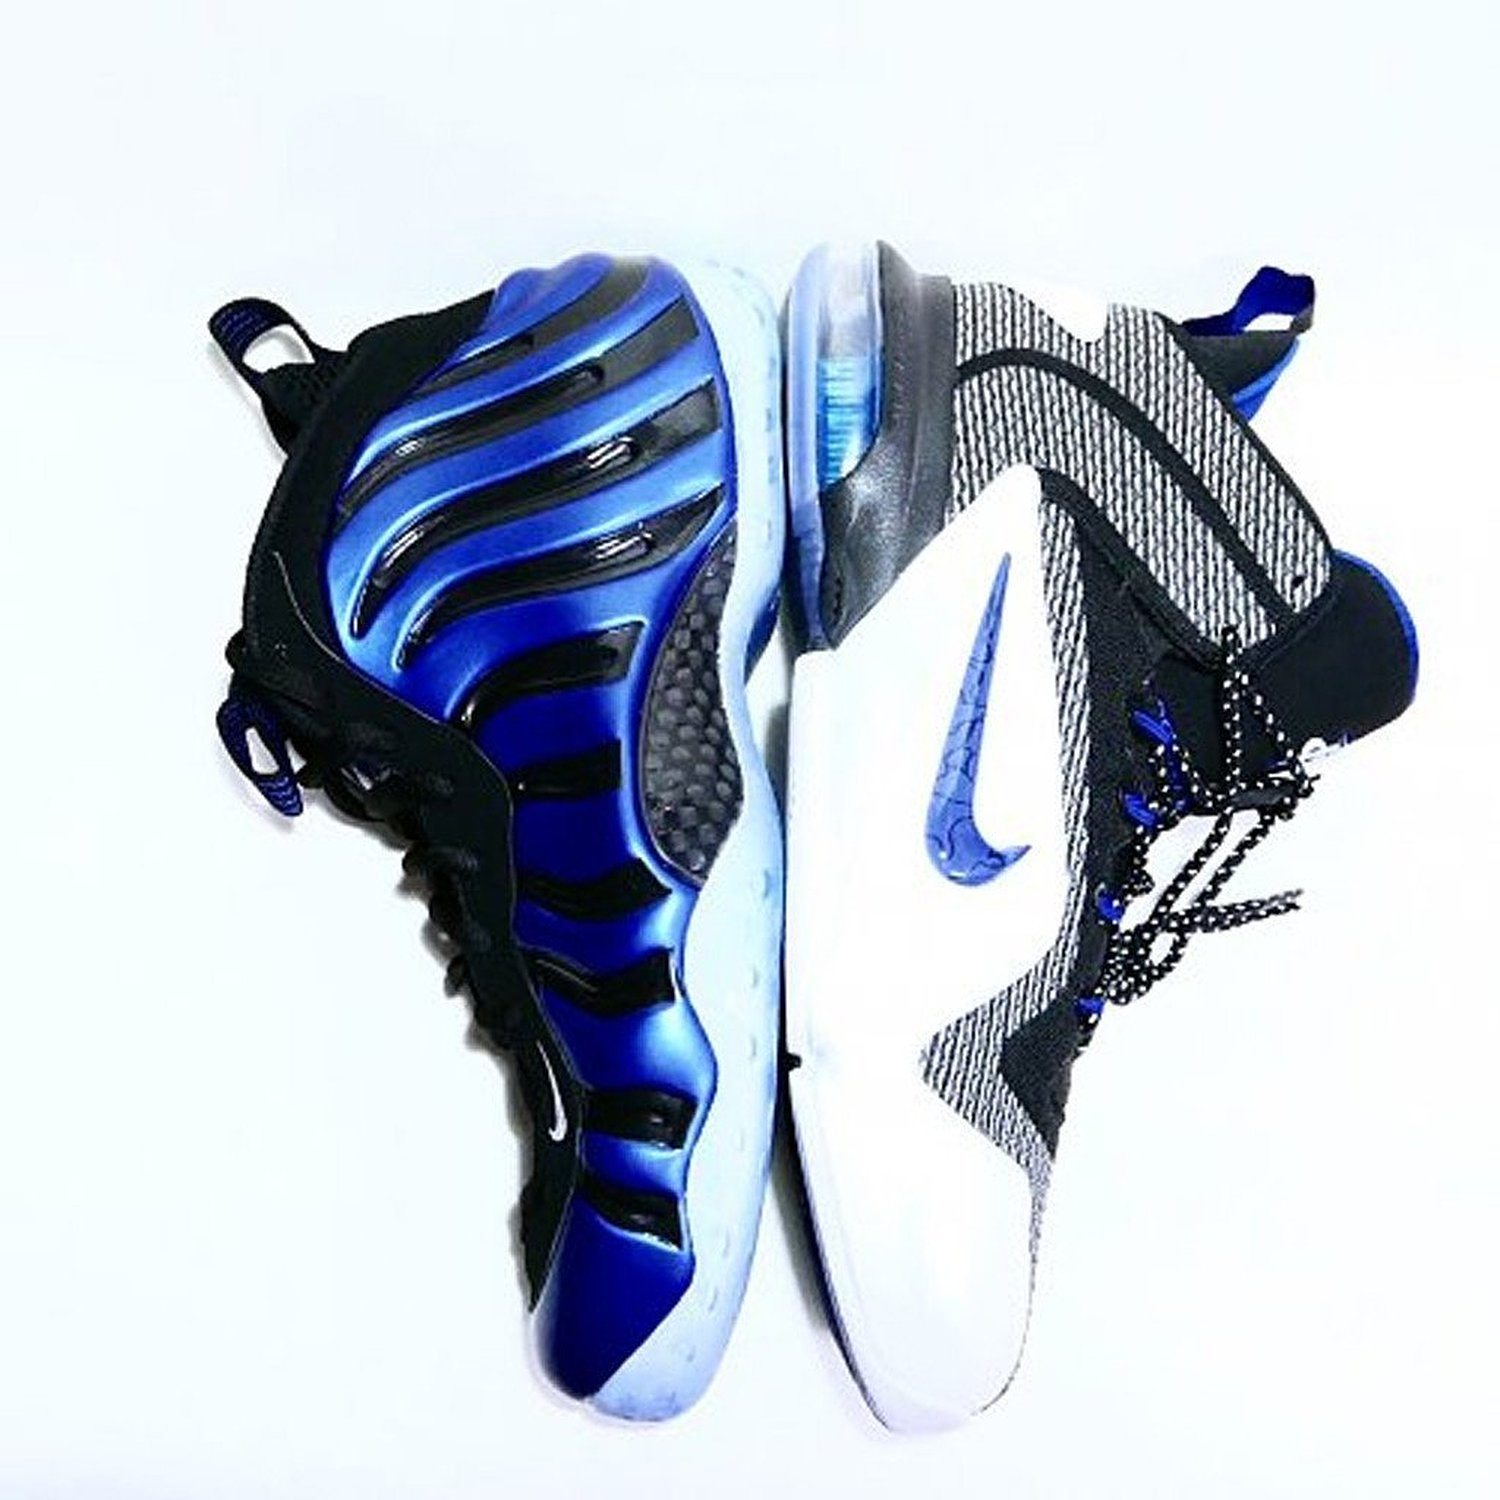 promo code fcaca e5224 Nike Penny Pack QS Game Royal  Sharpie  Size 7 Foamposite 800180 001